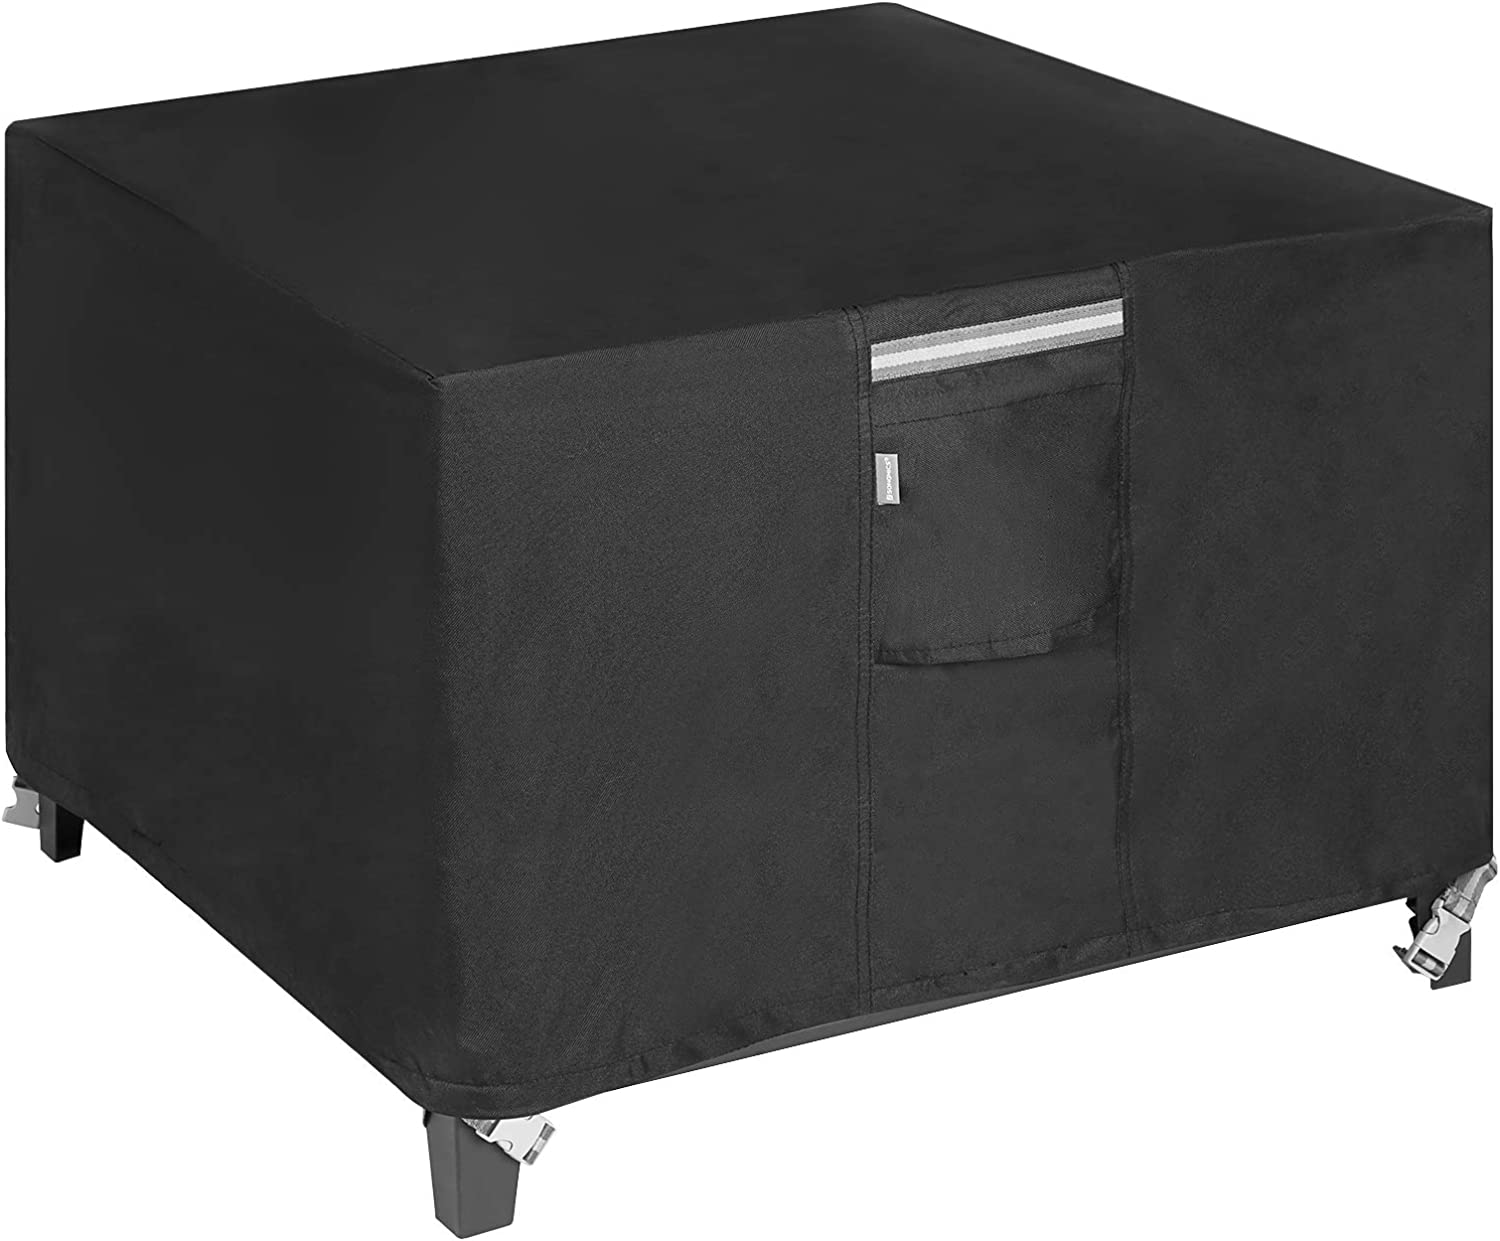 Quality inspection SONGMICS Fire Pit Cover 600D Oxford Fabric Max 82% OFF Tabl Square